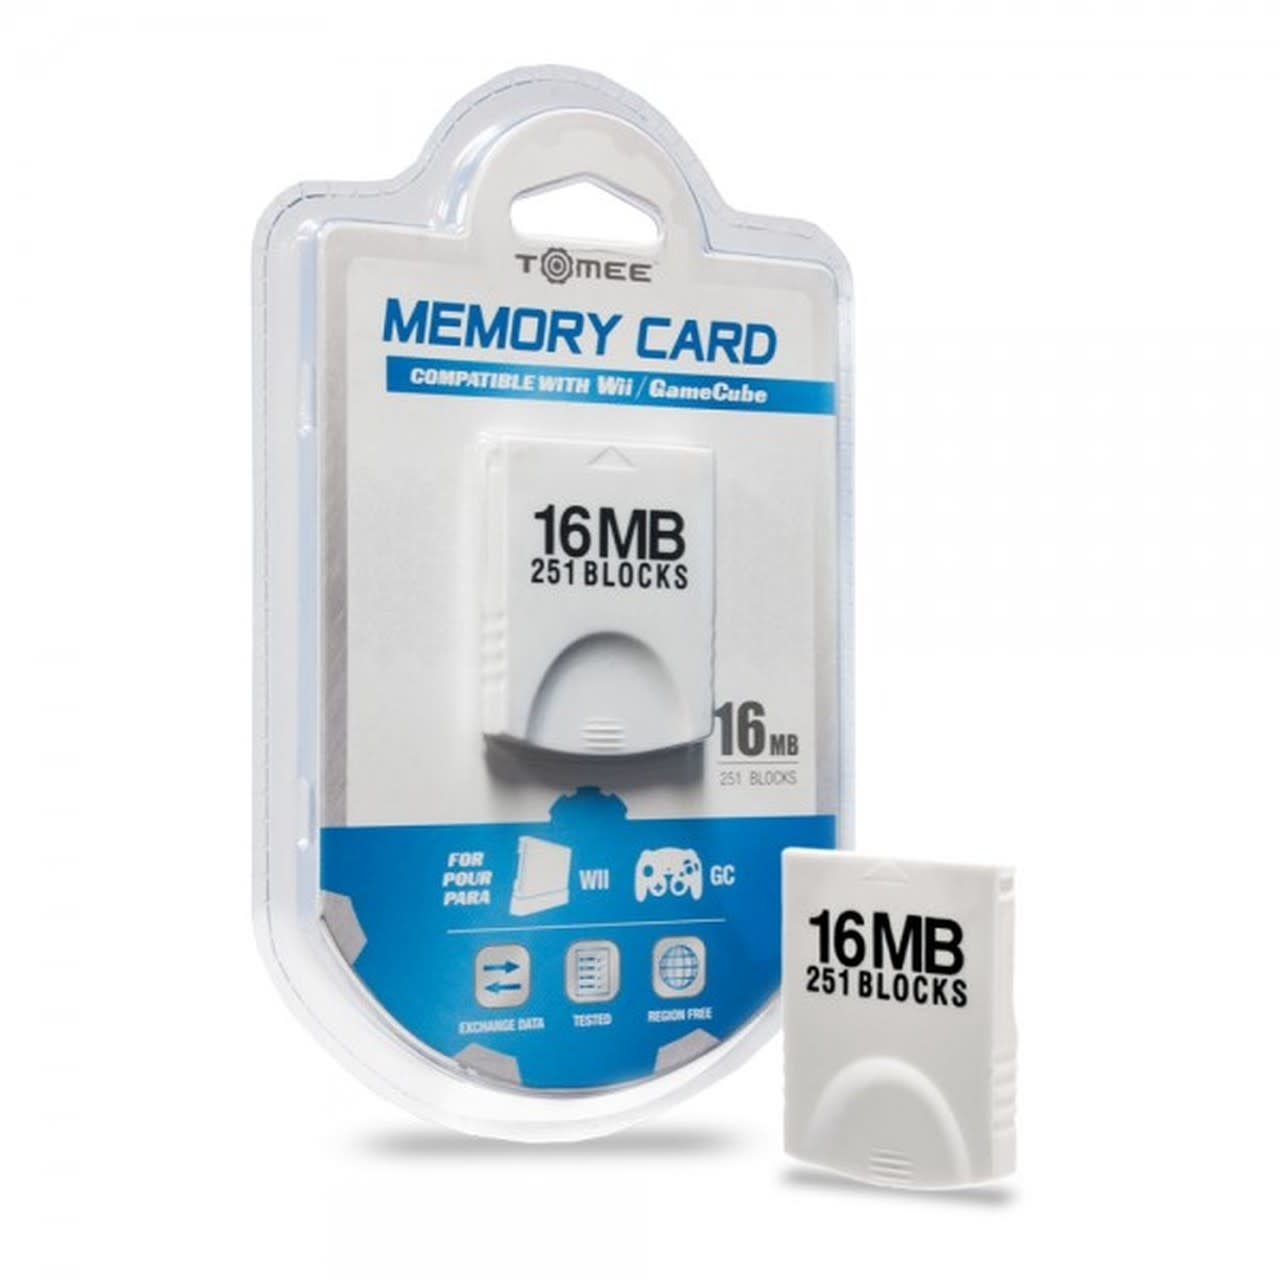 [Third Party] Wii/Gamecube 64MB Memory Card NEW